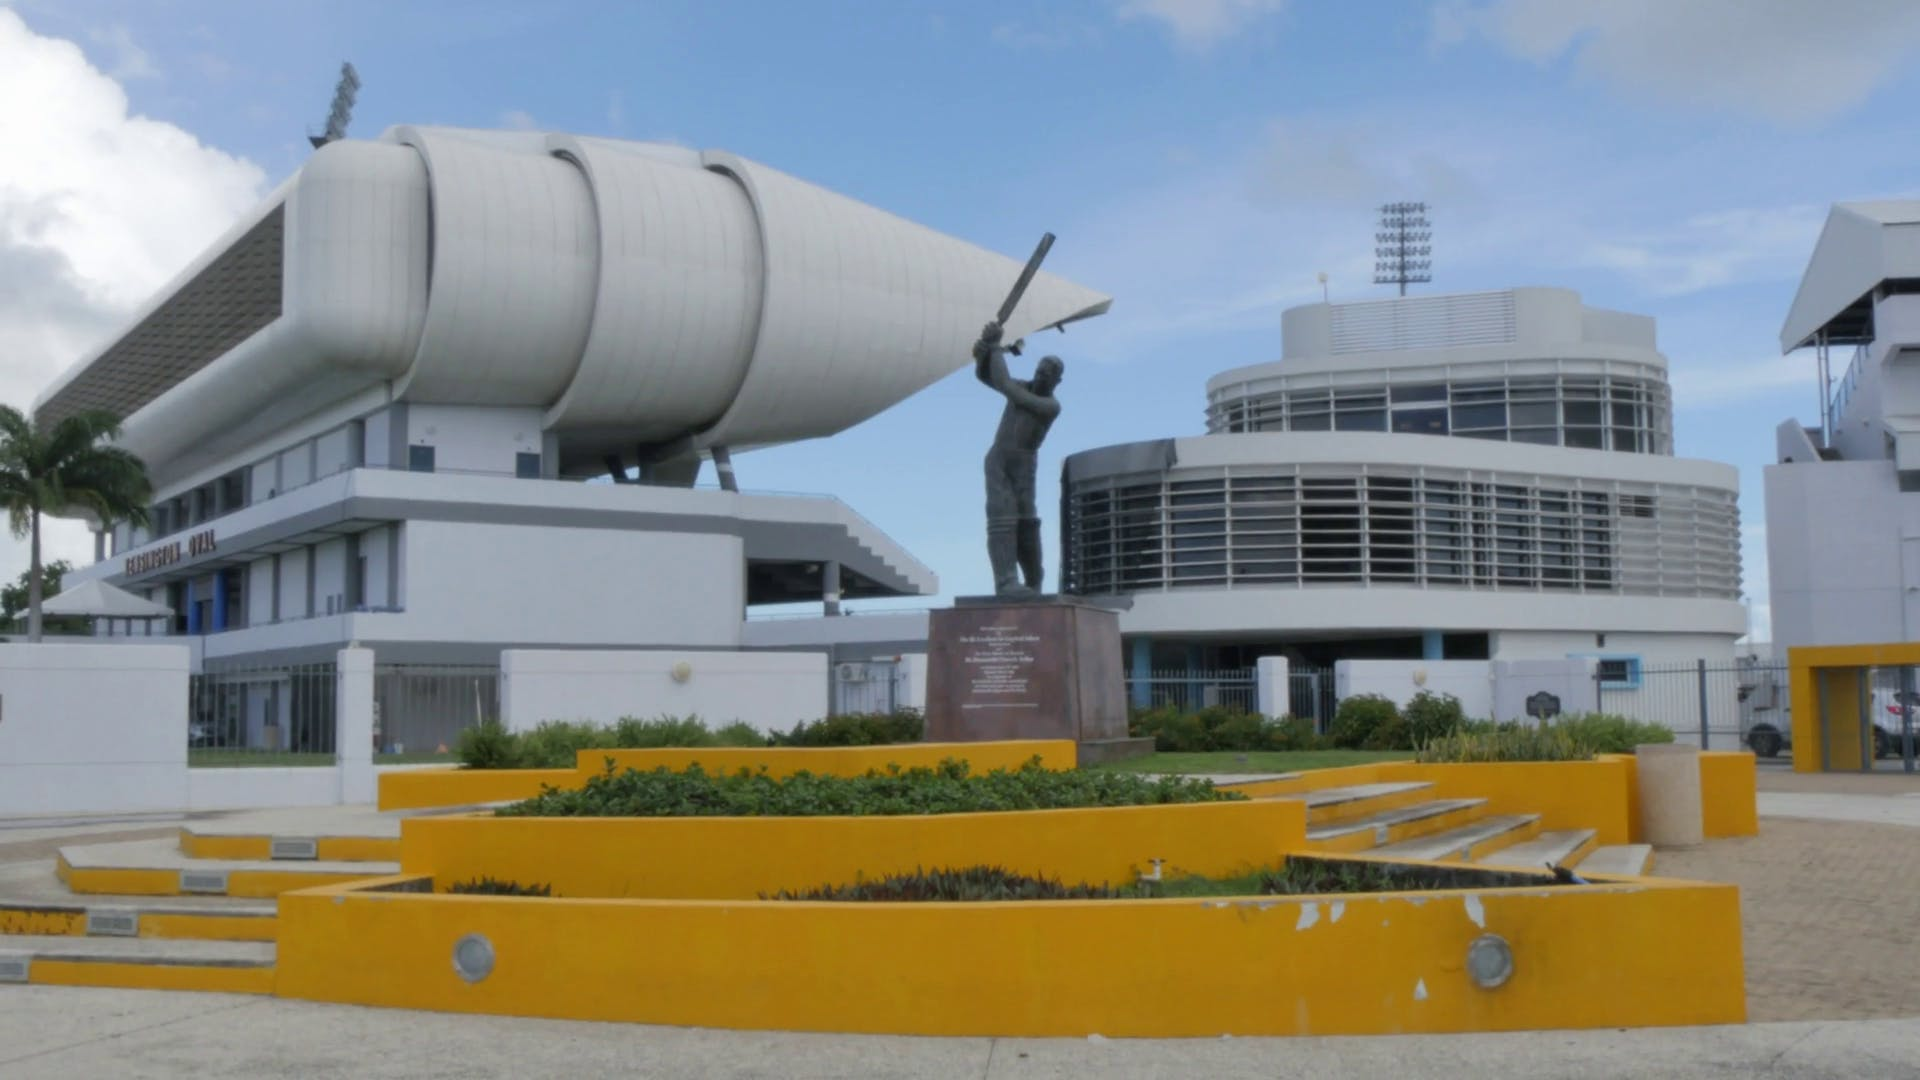 The Garfield Sobers statue standing before the Kensington Oval